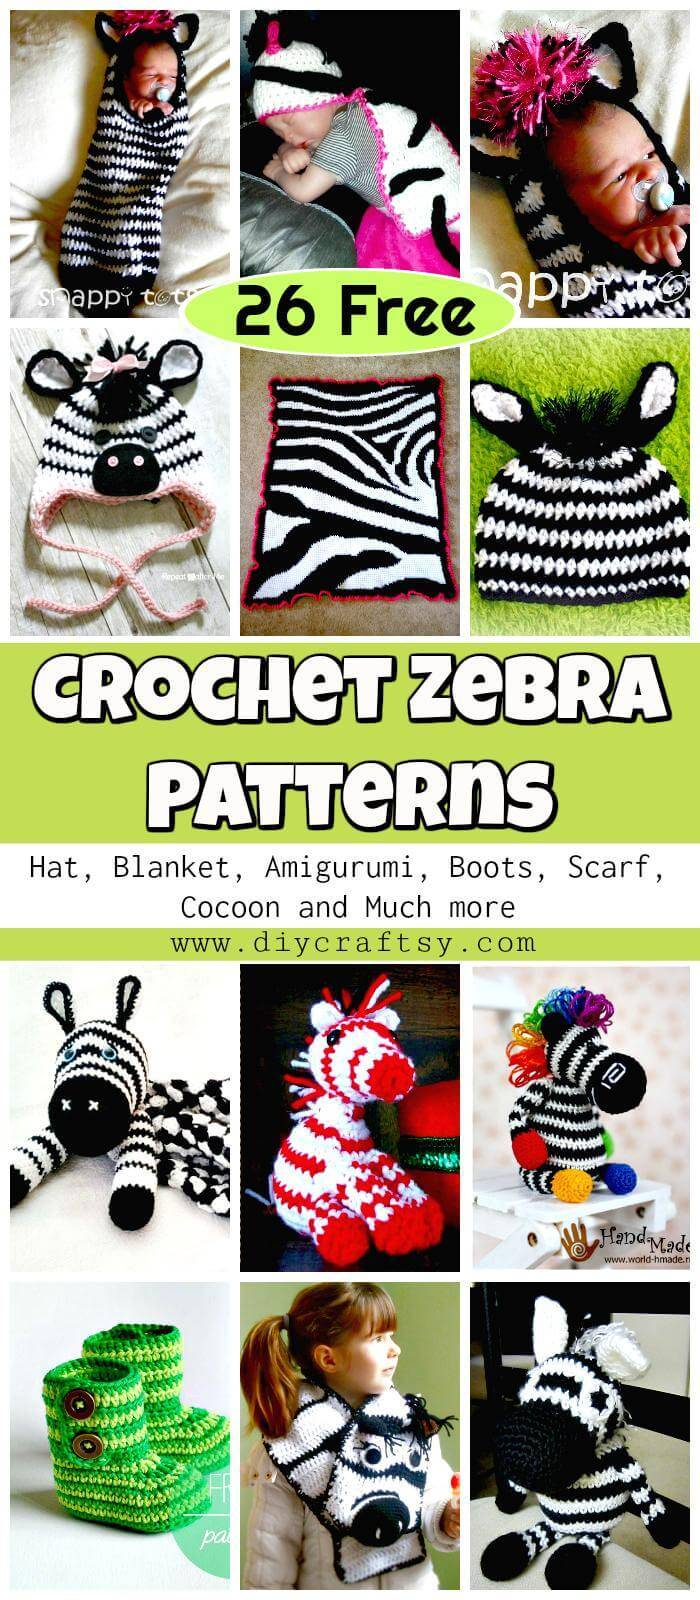 Free Crochet Zebra Patterns - Crochet Hat, Blanket, Amigurumi